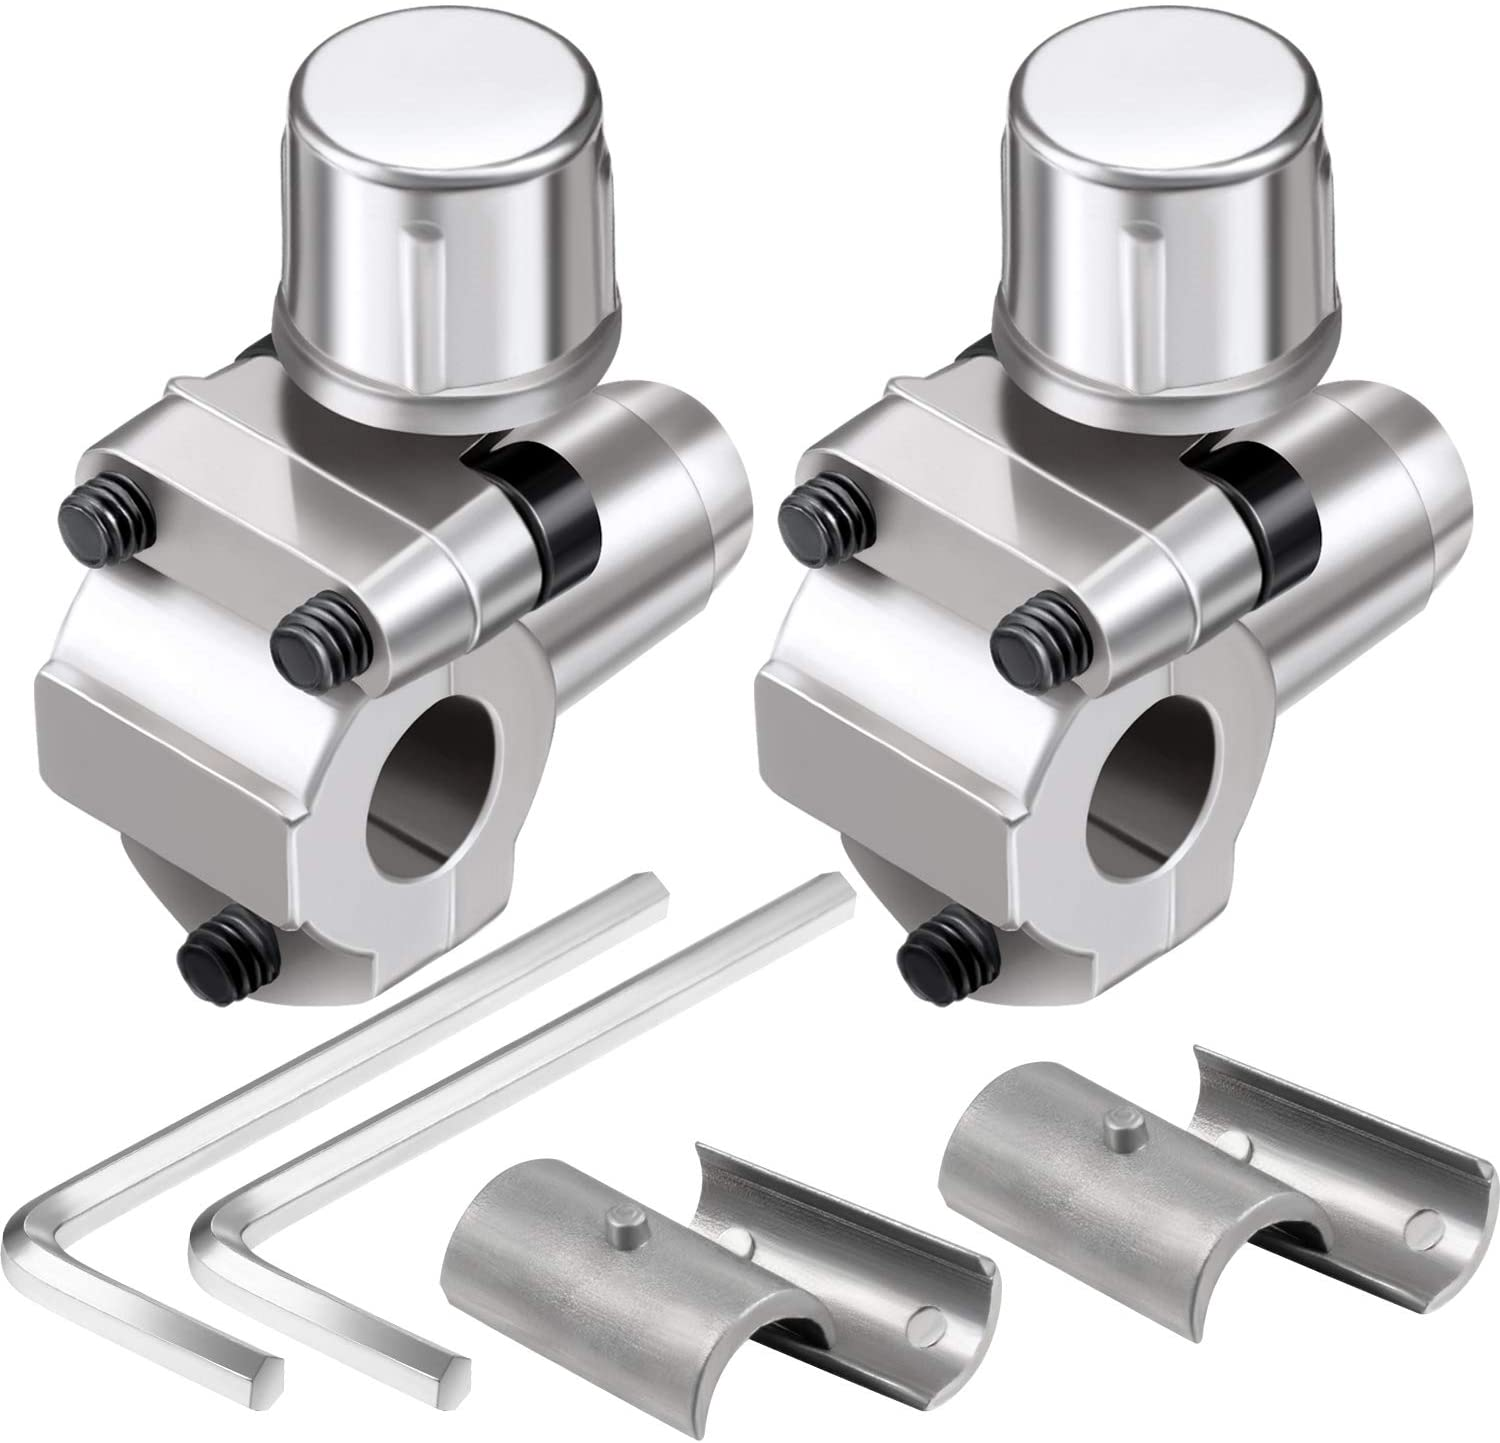 2 Pack BPV-31 Bullet Piercing Tap Valve Kits Compatible with 1/4 Inch, 5/16 Inch, 3/8 Inch Outside Diameter Pipes, Replace for AP4502525, BPV31D, GPV14, GPV31, GPV38, GPV56, MPV31